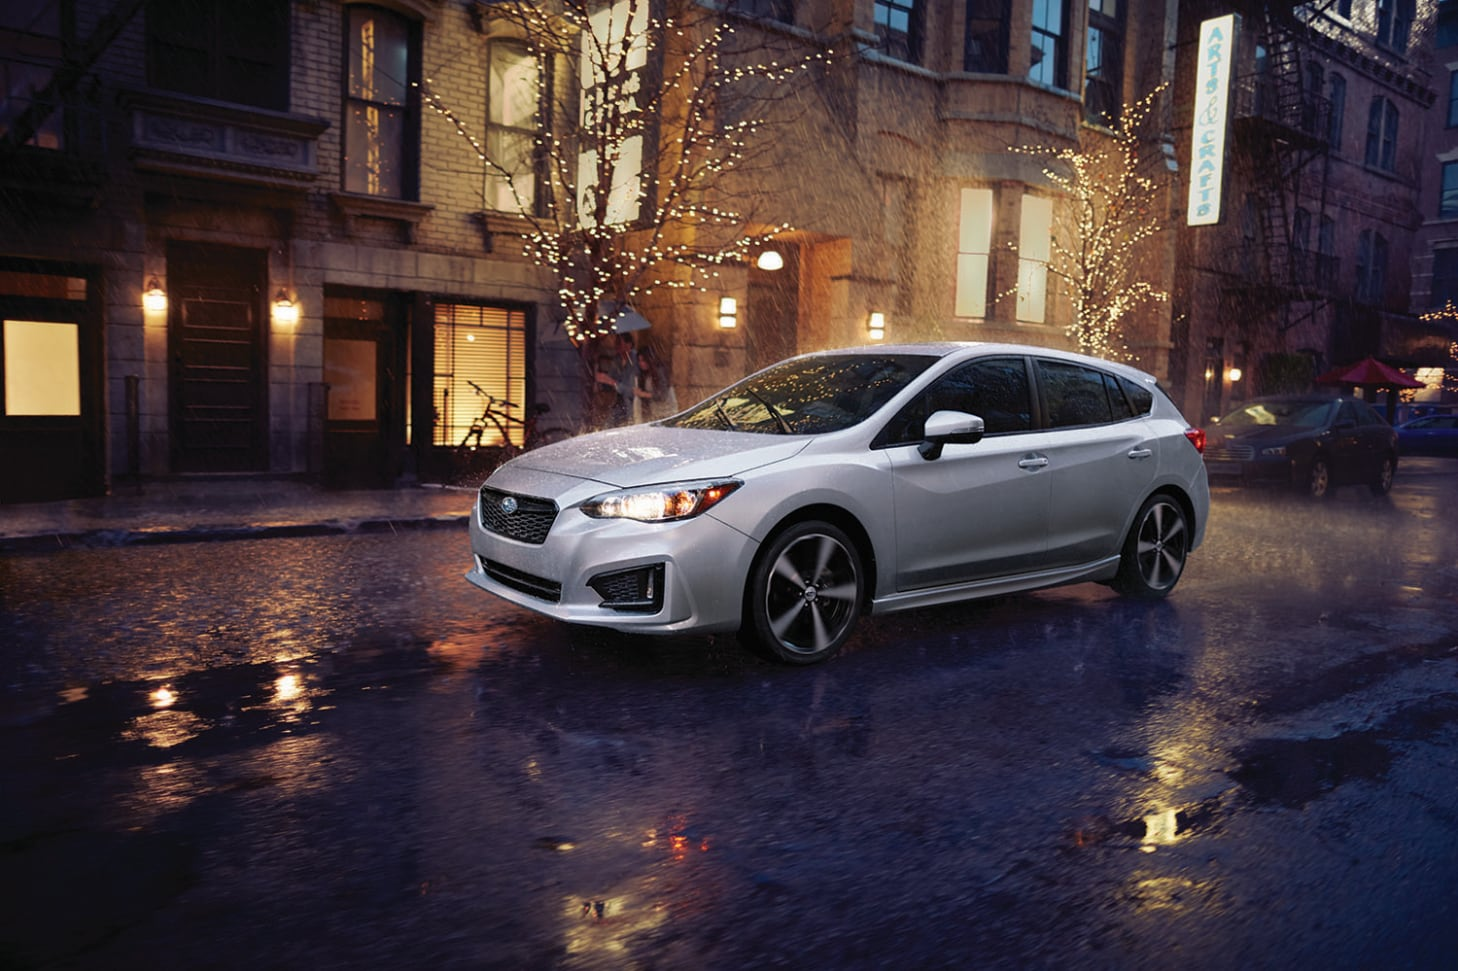 2017 Subaru Impreza Hatchback for sale in El Paso, TX